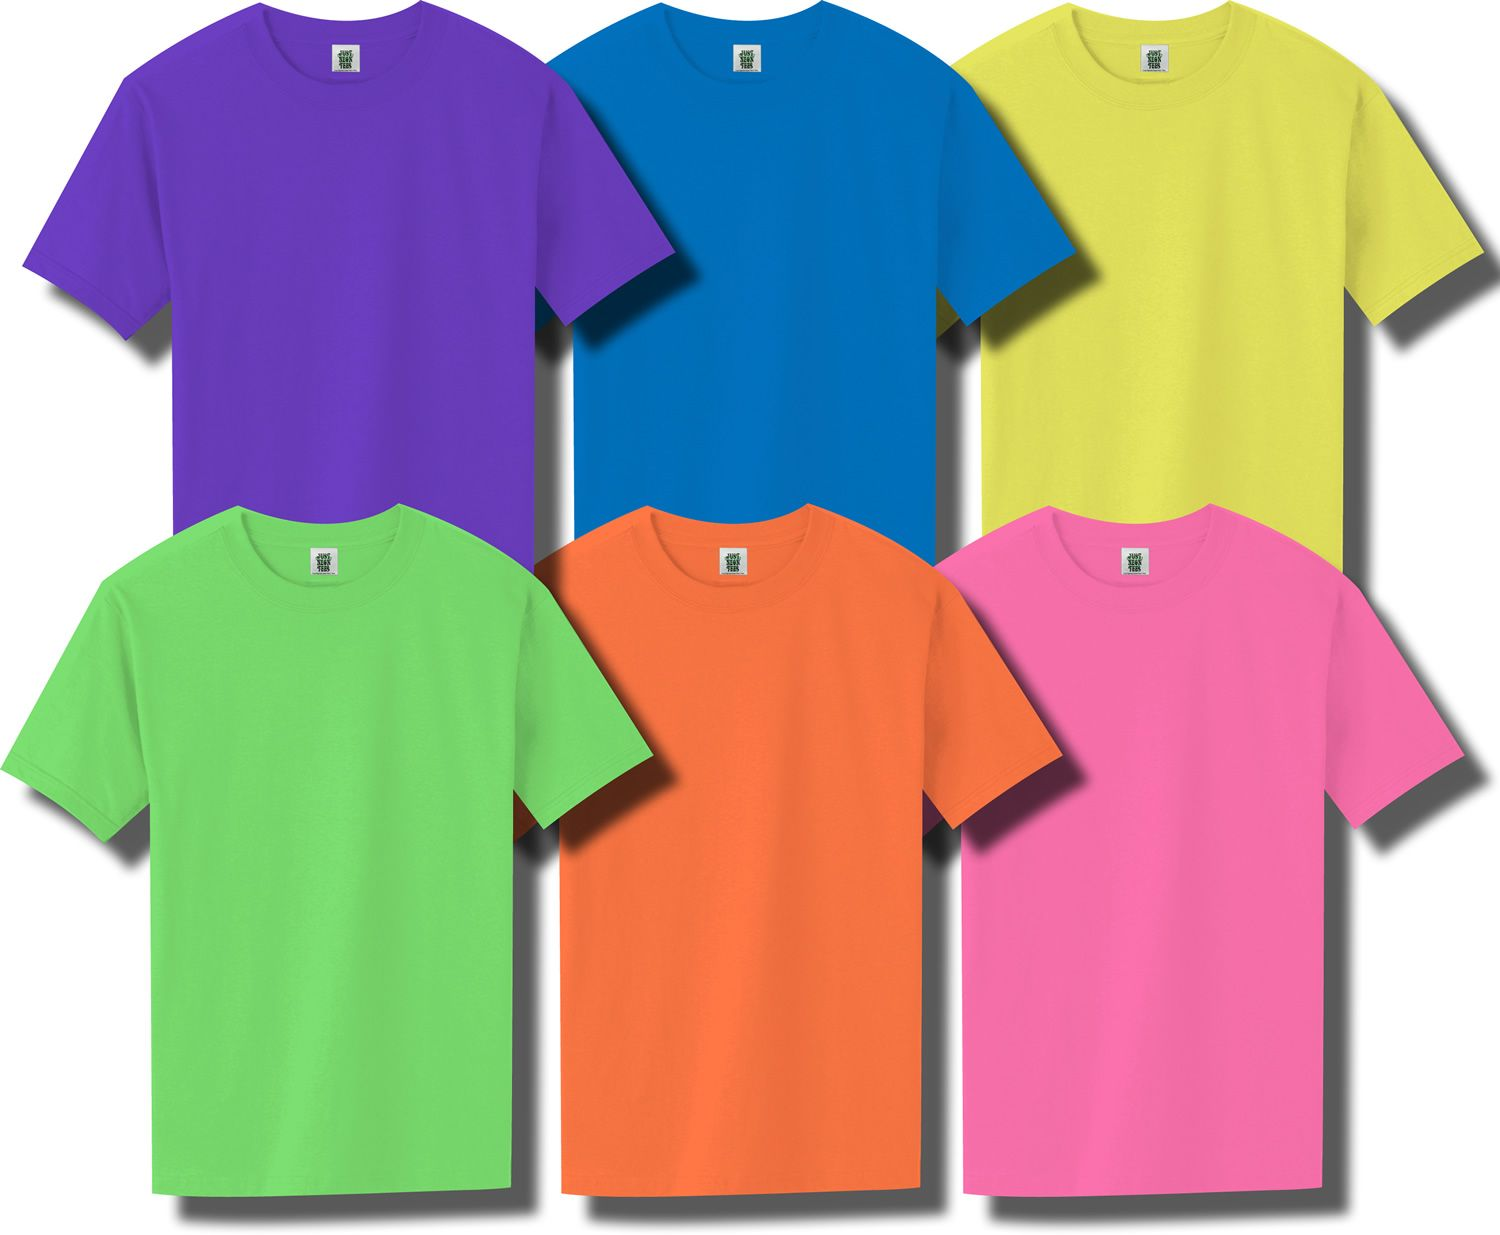 Happy Fathers Day Neon Bright Men/'s Tee Image by Shutterstock